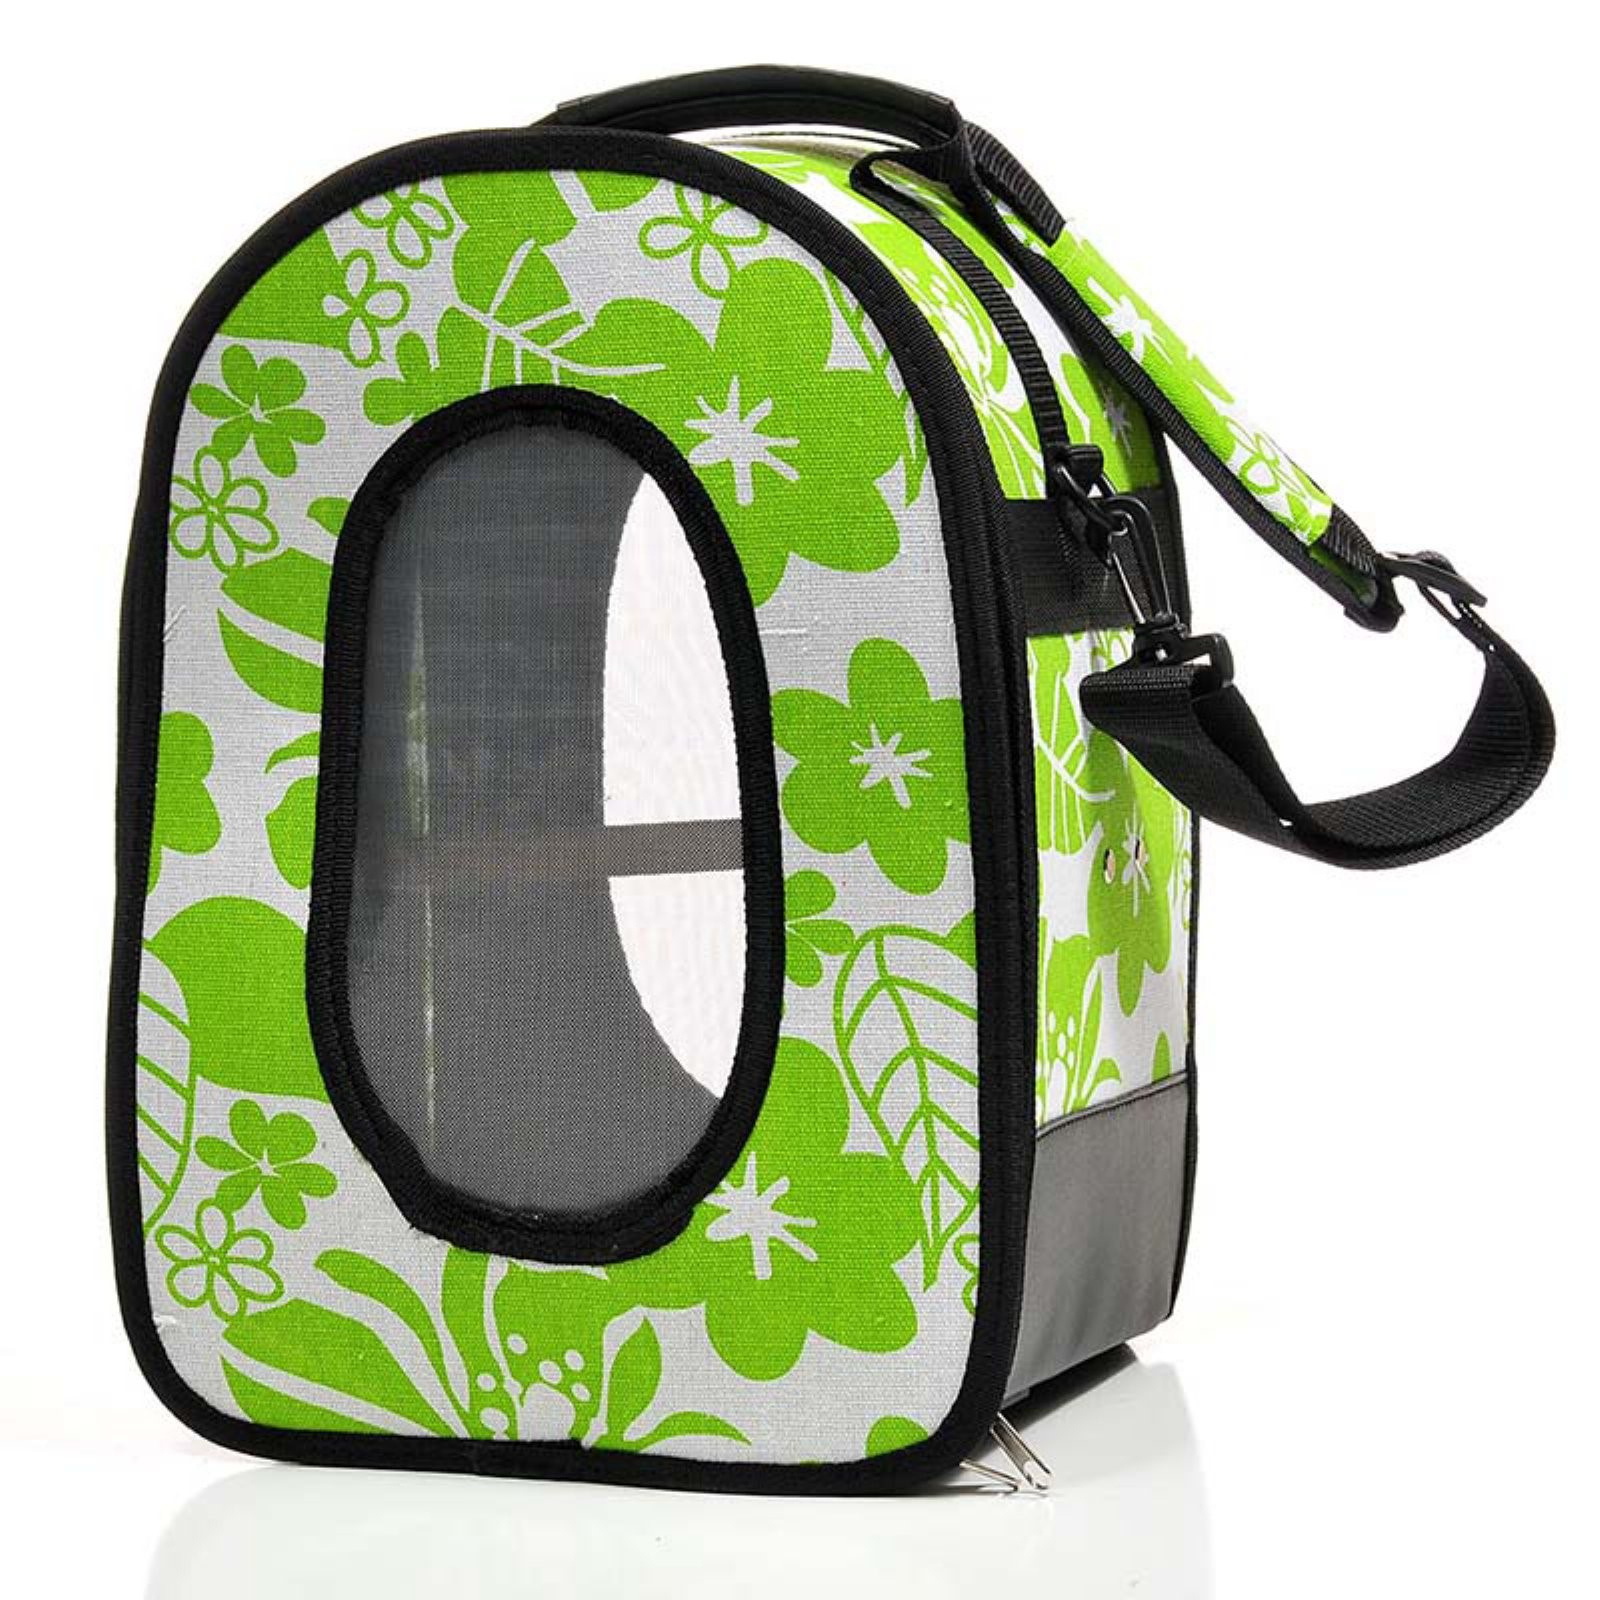 A & E Cage Company Soft Sided Travel Bird Carrier, Large, Green